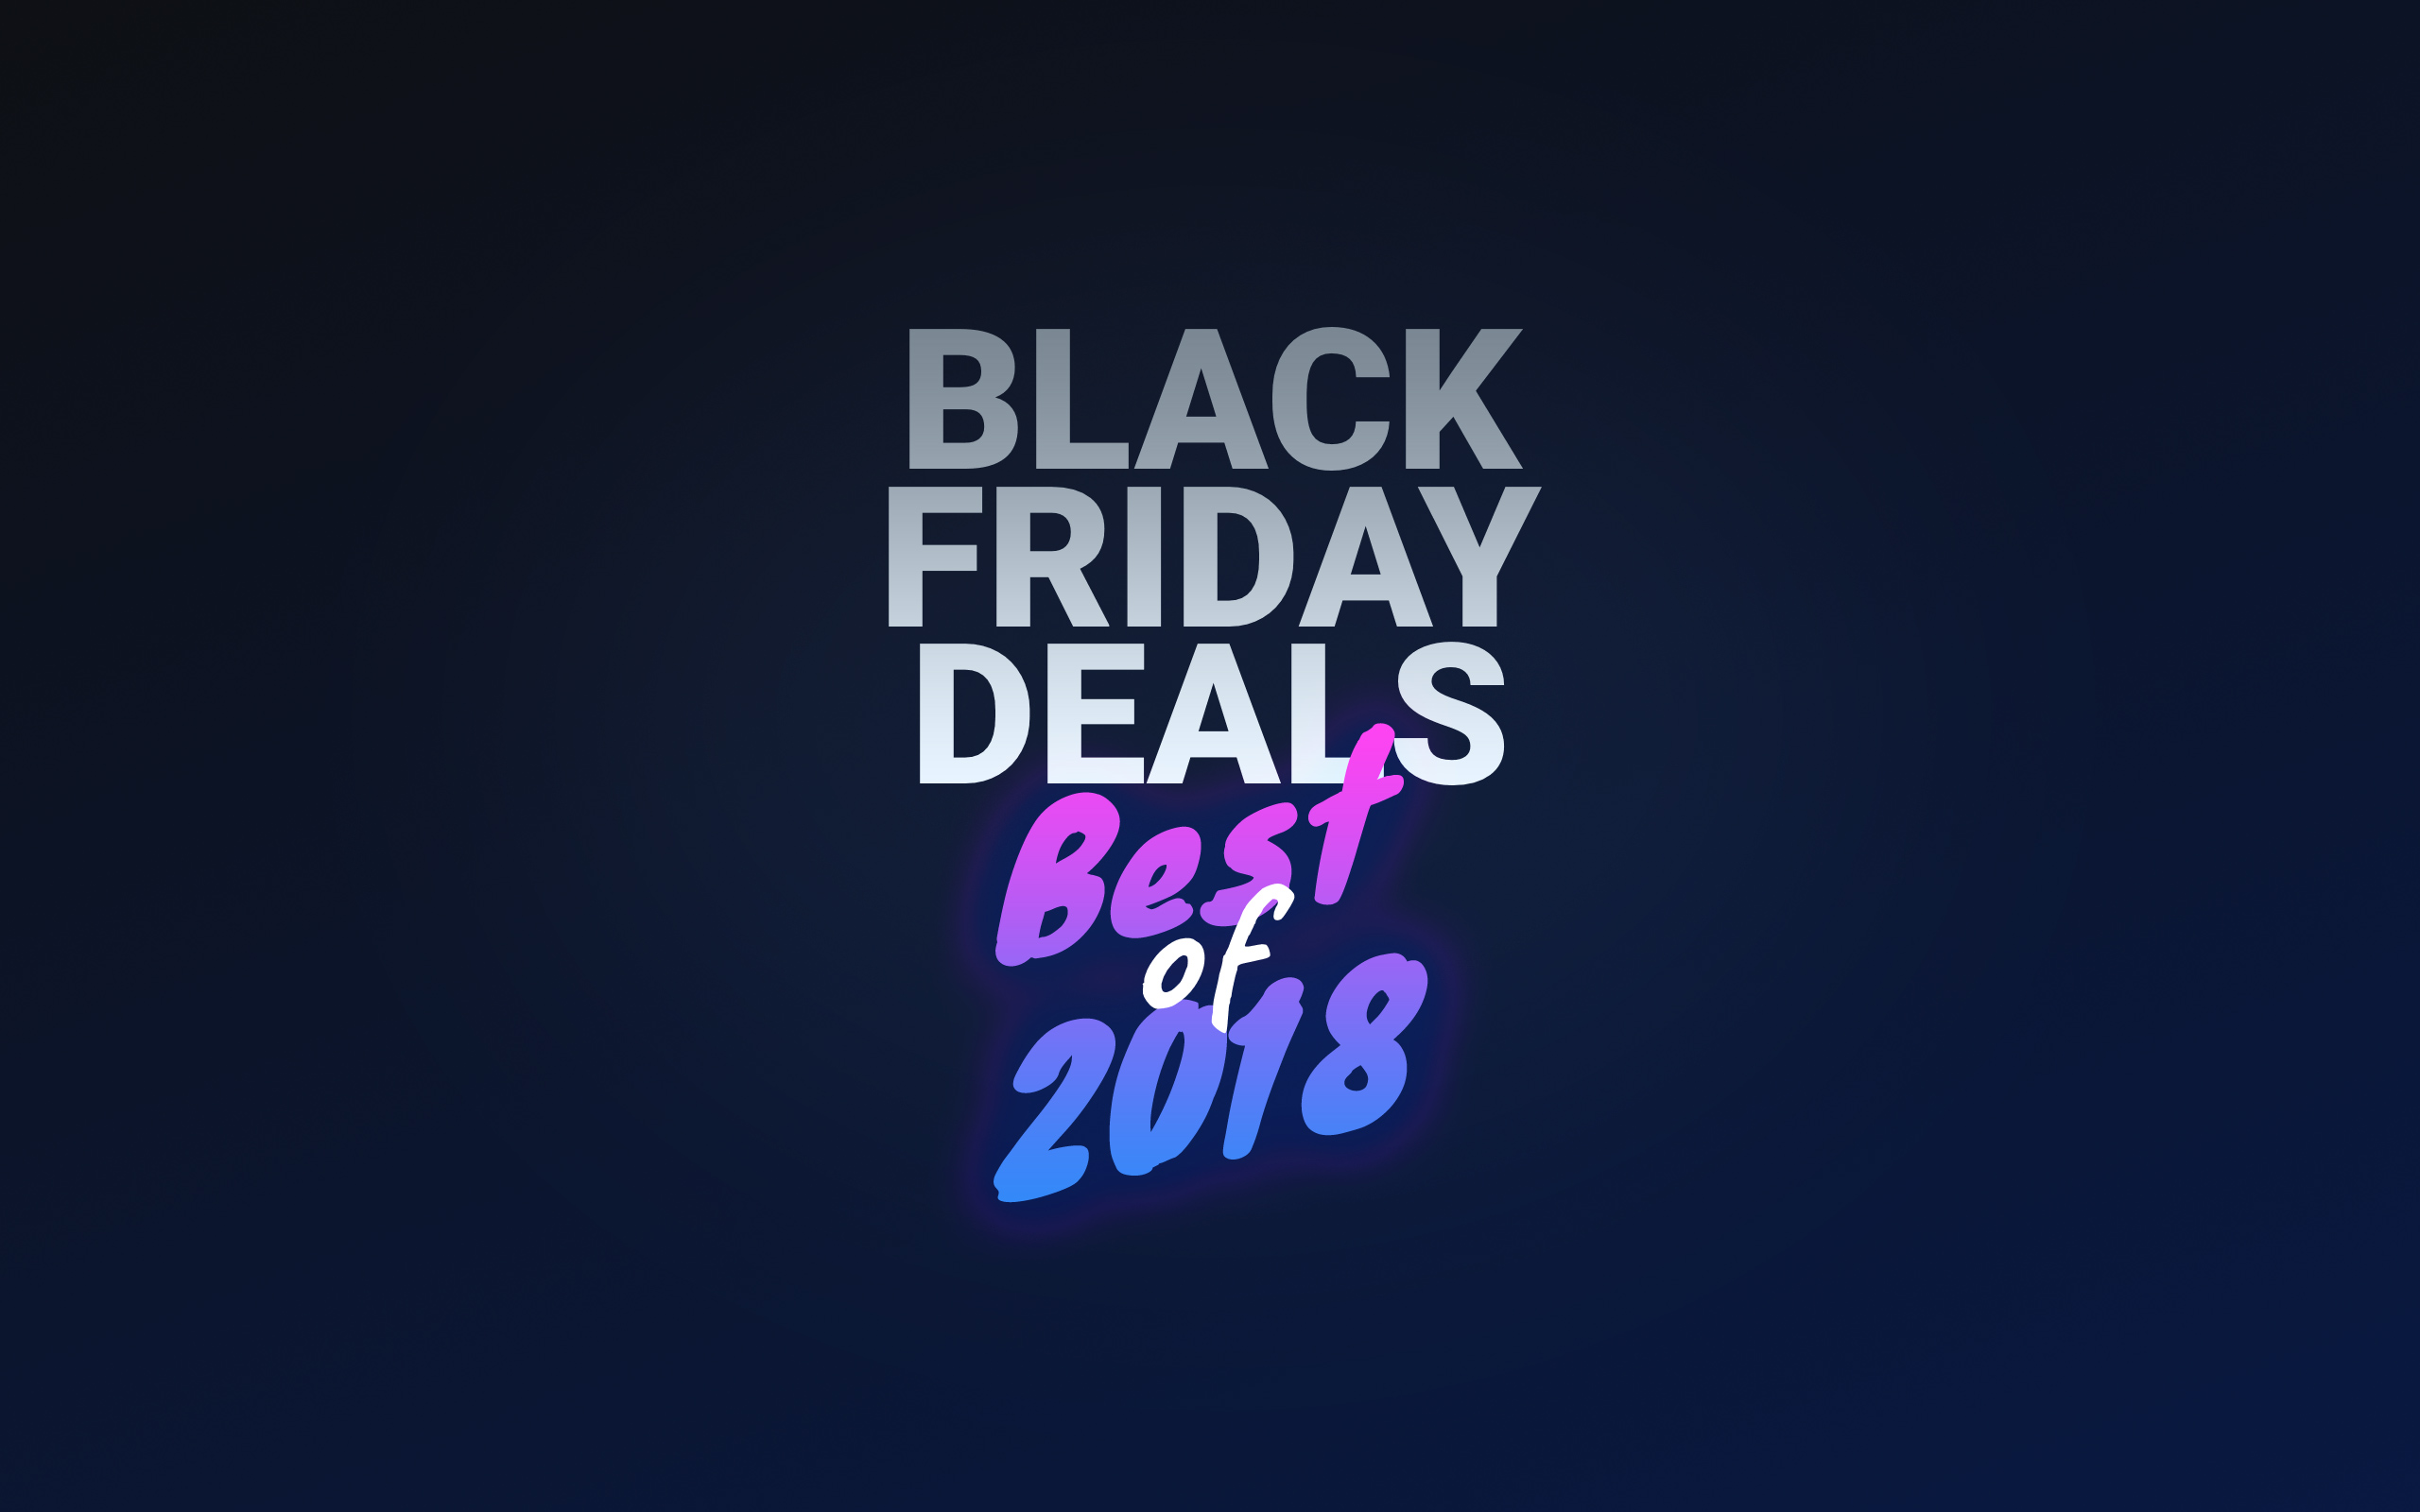 Black Fridaz Our Favorite 2018 Black Friday Deals